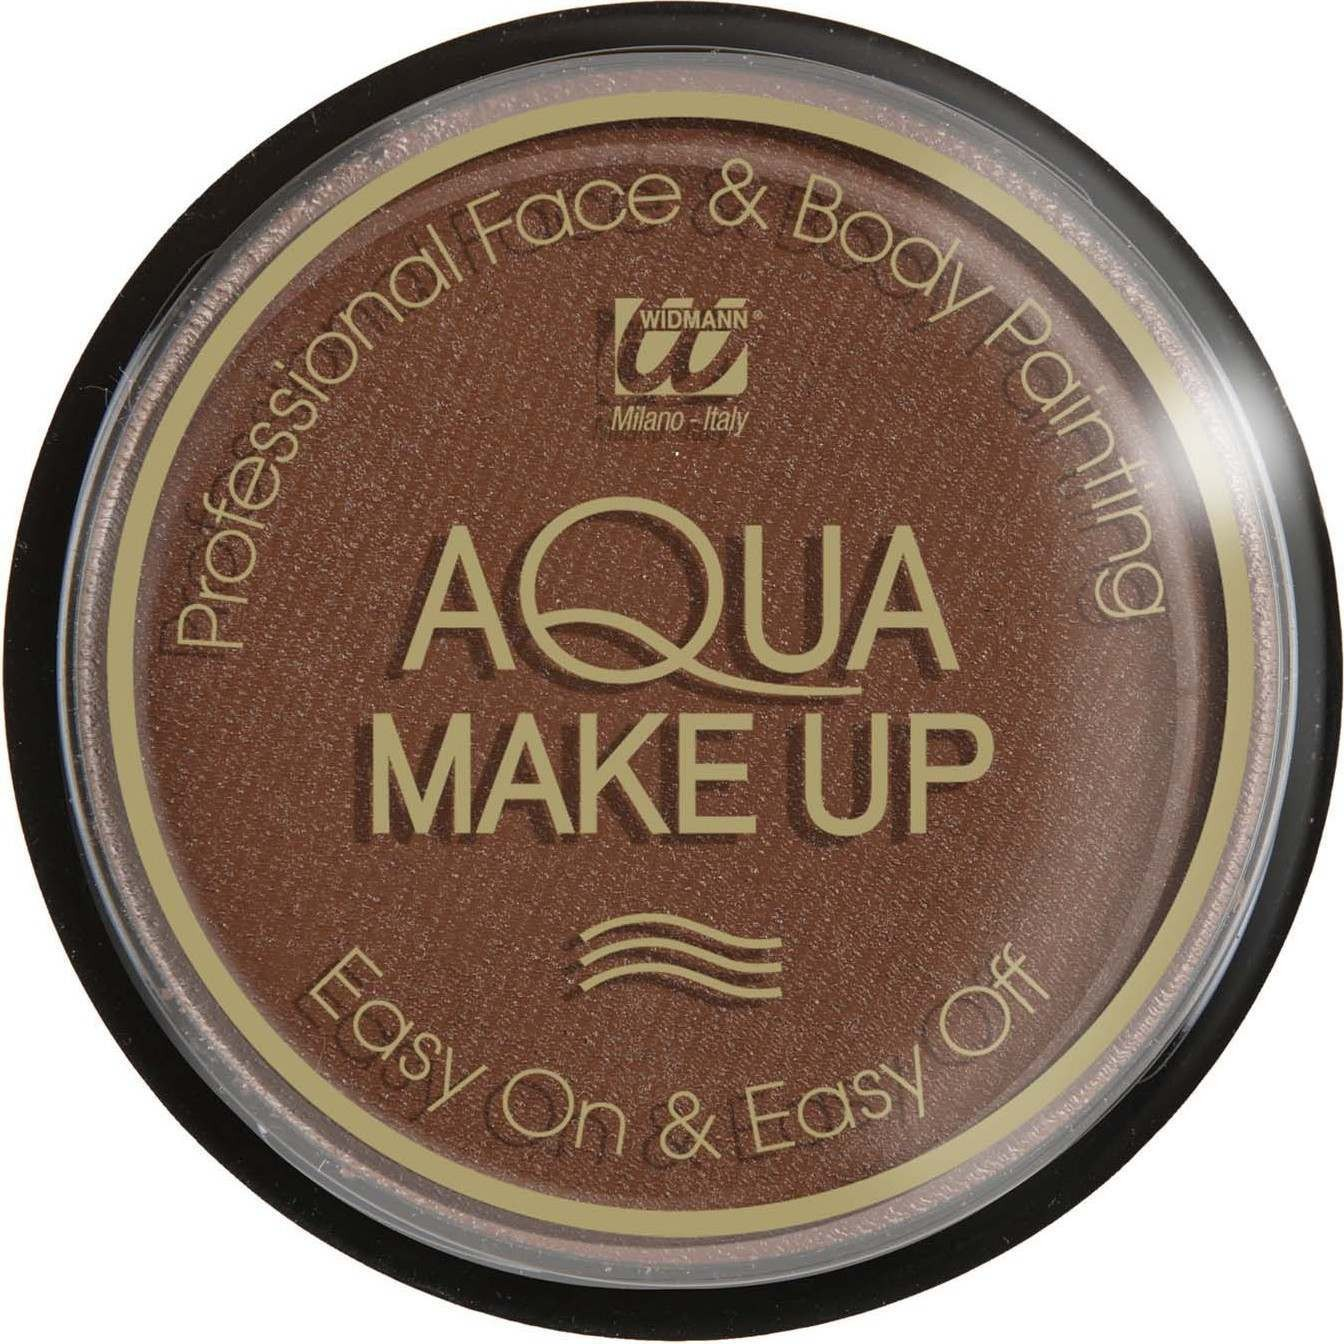 Aqua Makeup 30G - Brown Makeup - (Brown)